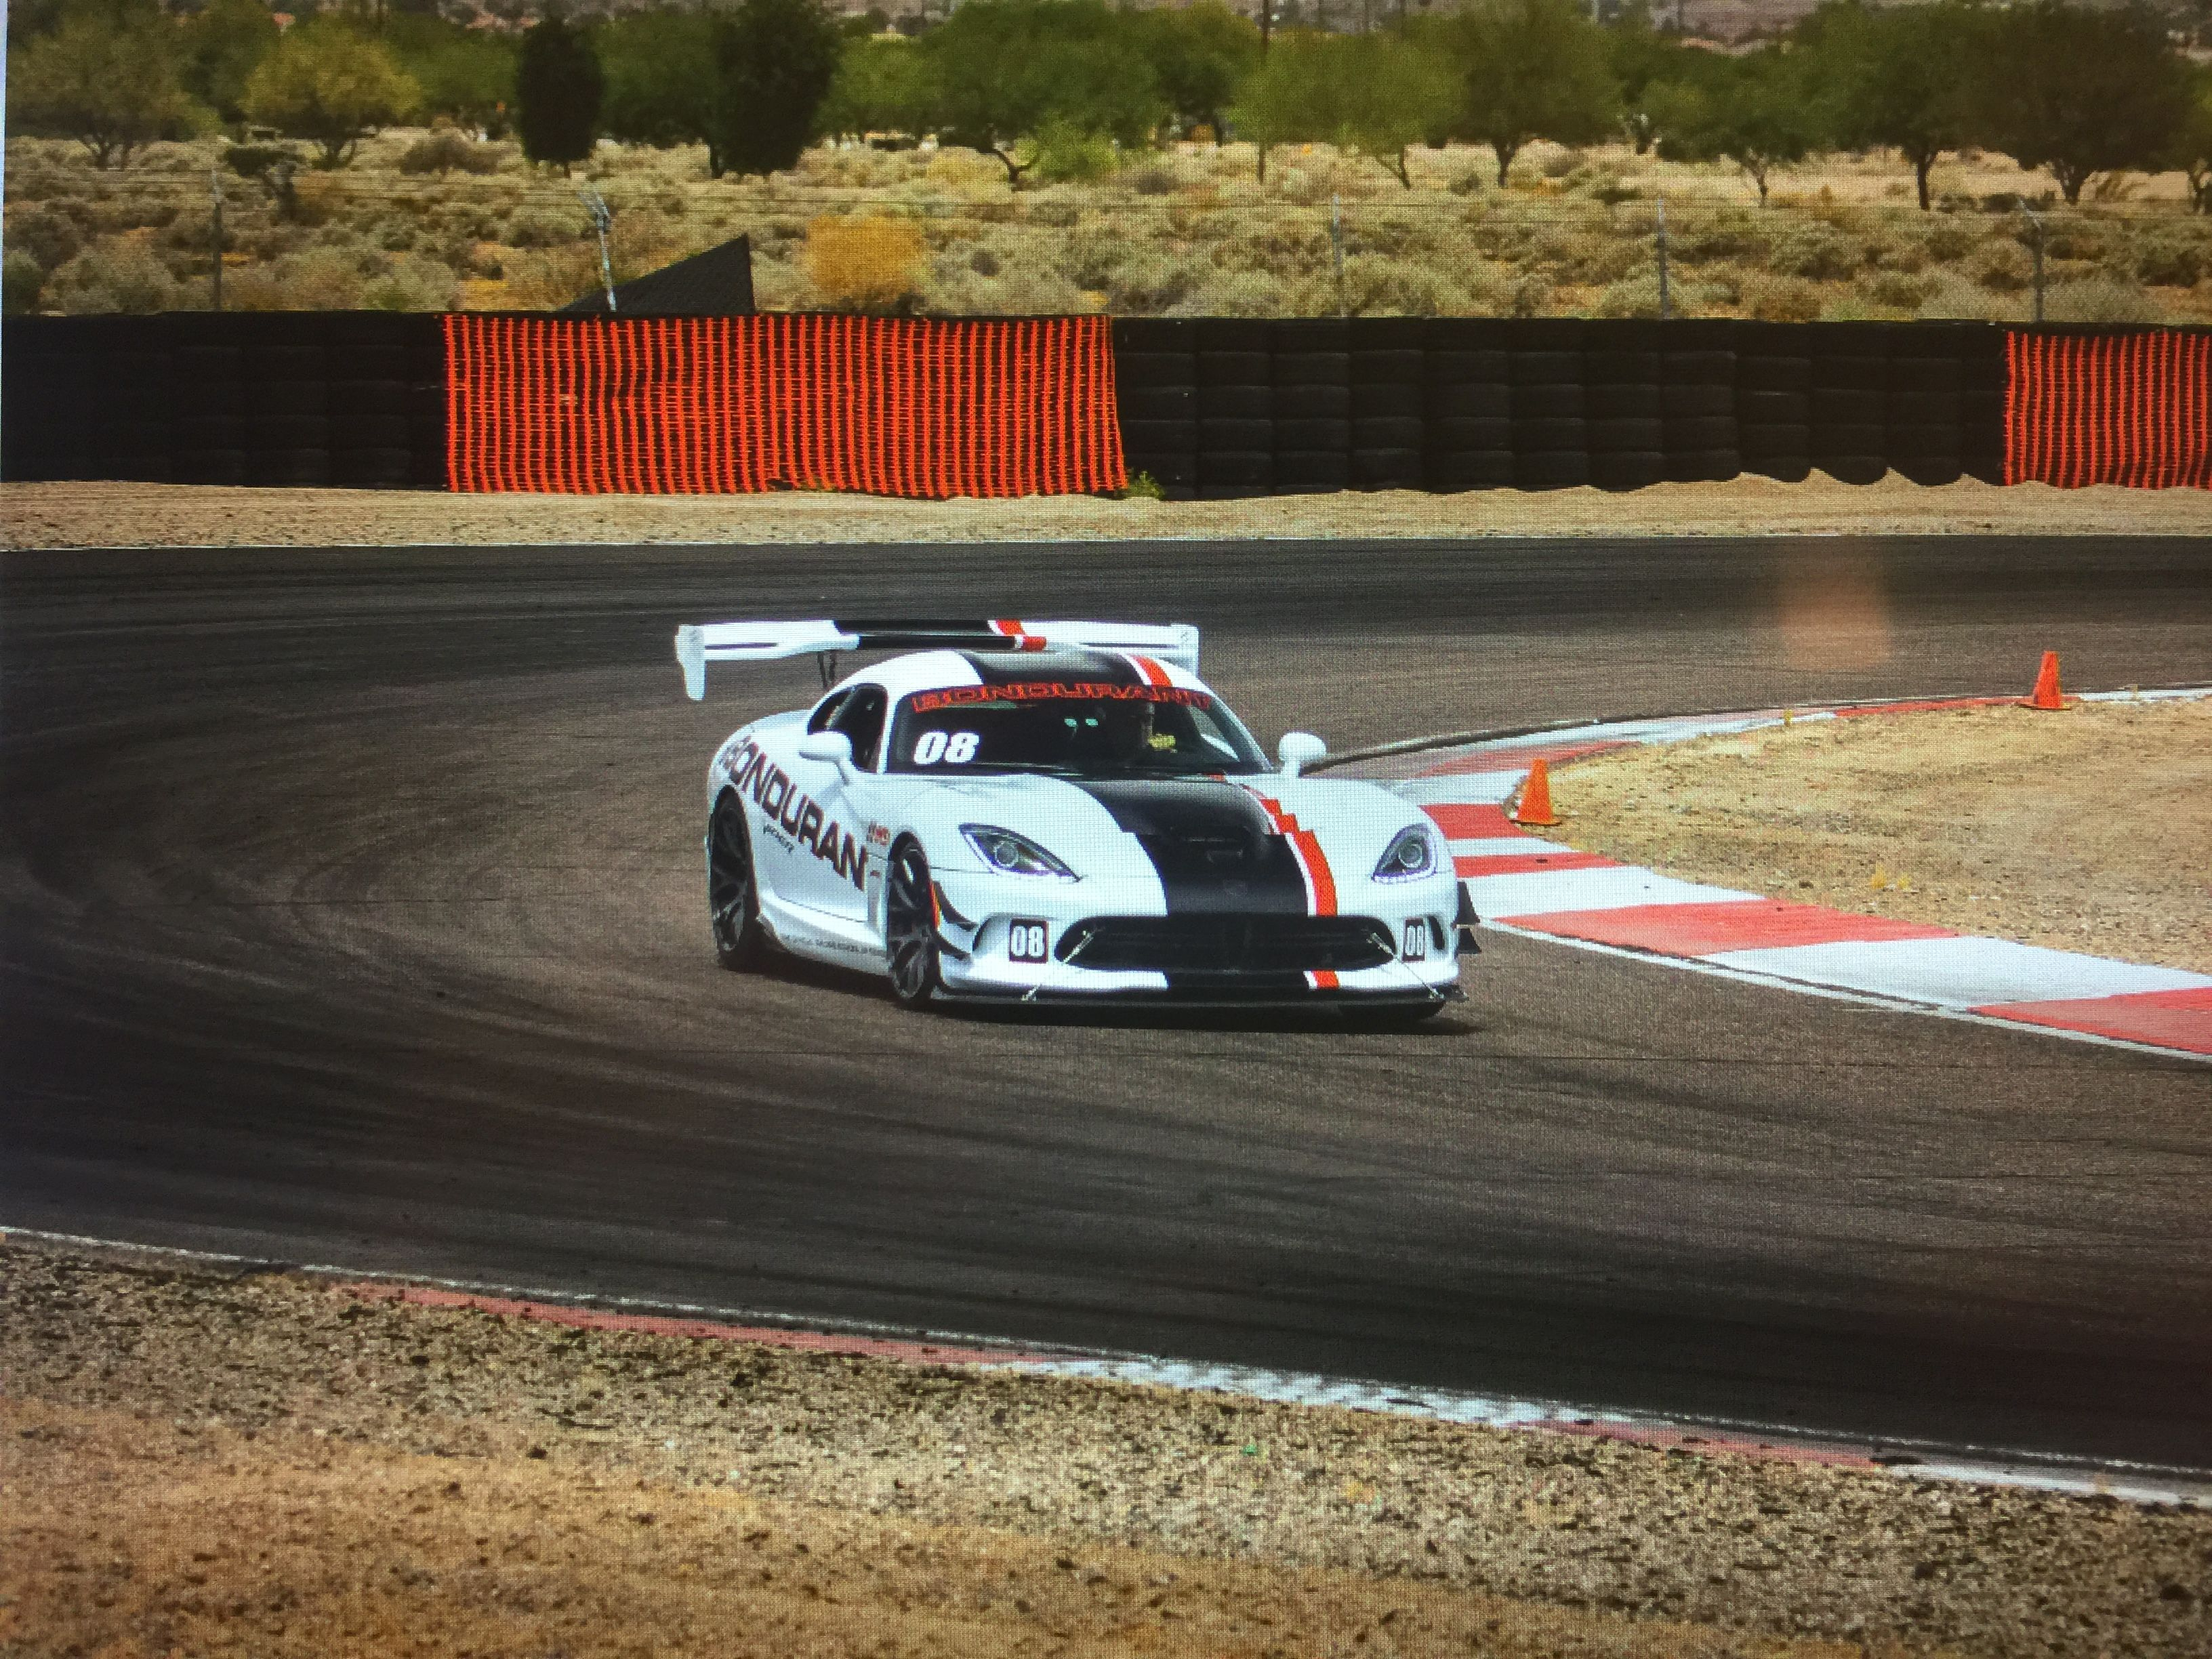 Dr Michael Lange Turning One Of The Fastest Lap Times Of The Day